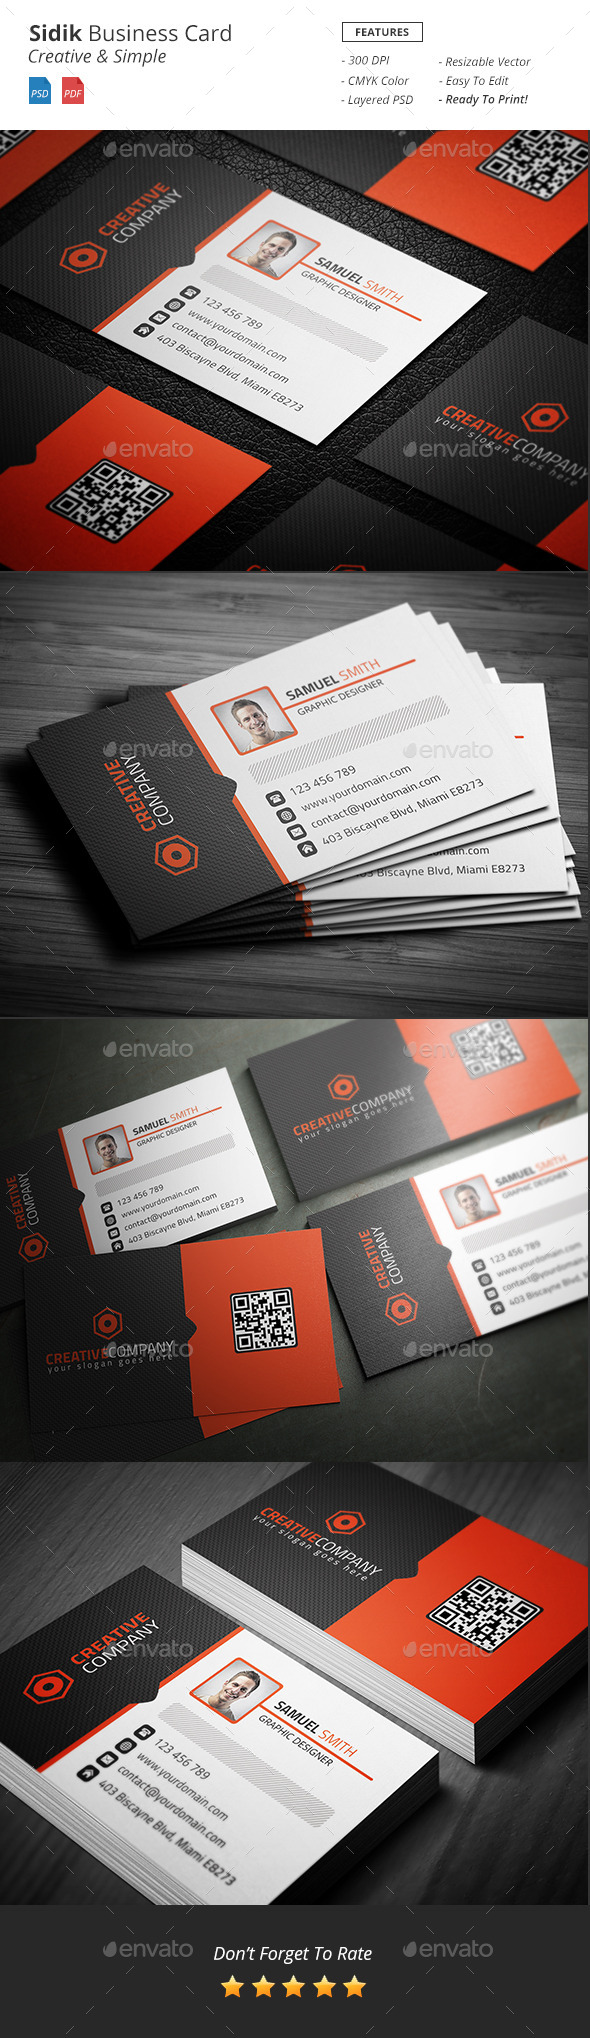 GraphicRiver Sidik Creative Business Card 11770995